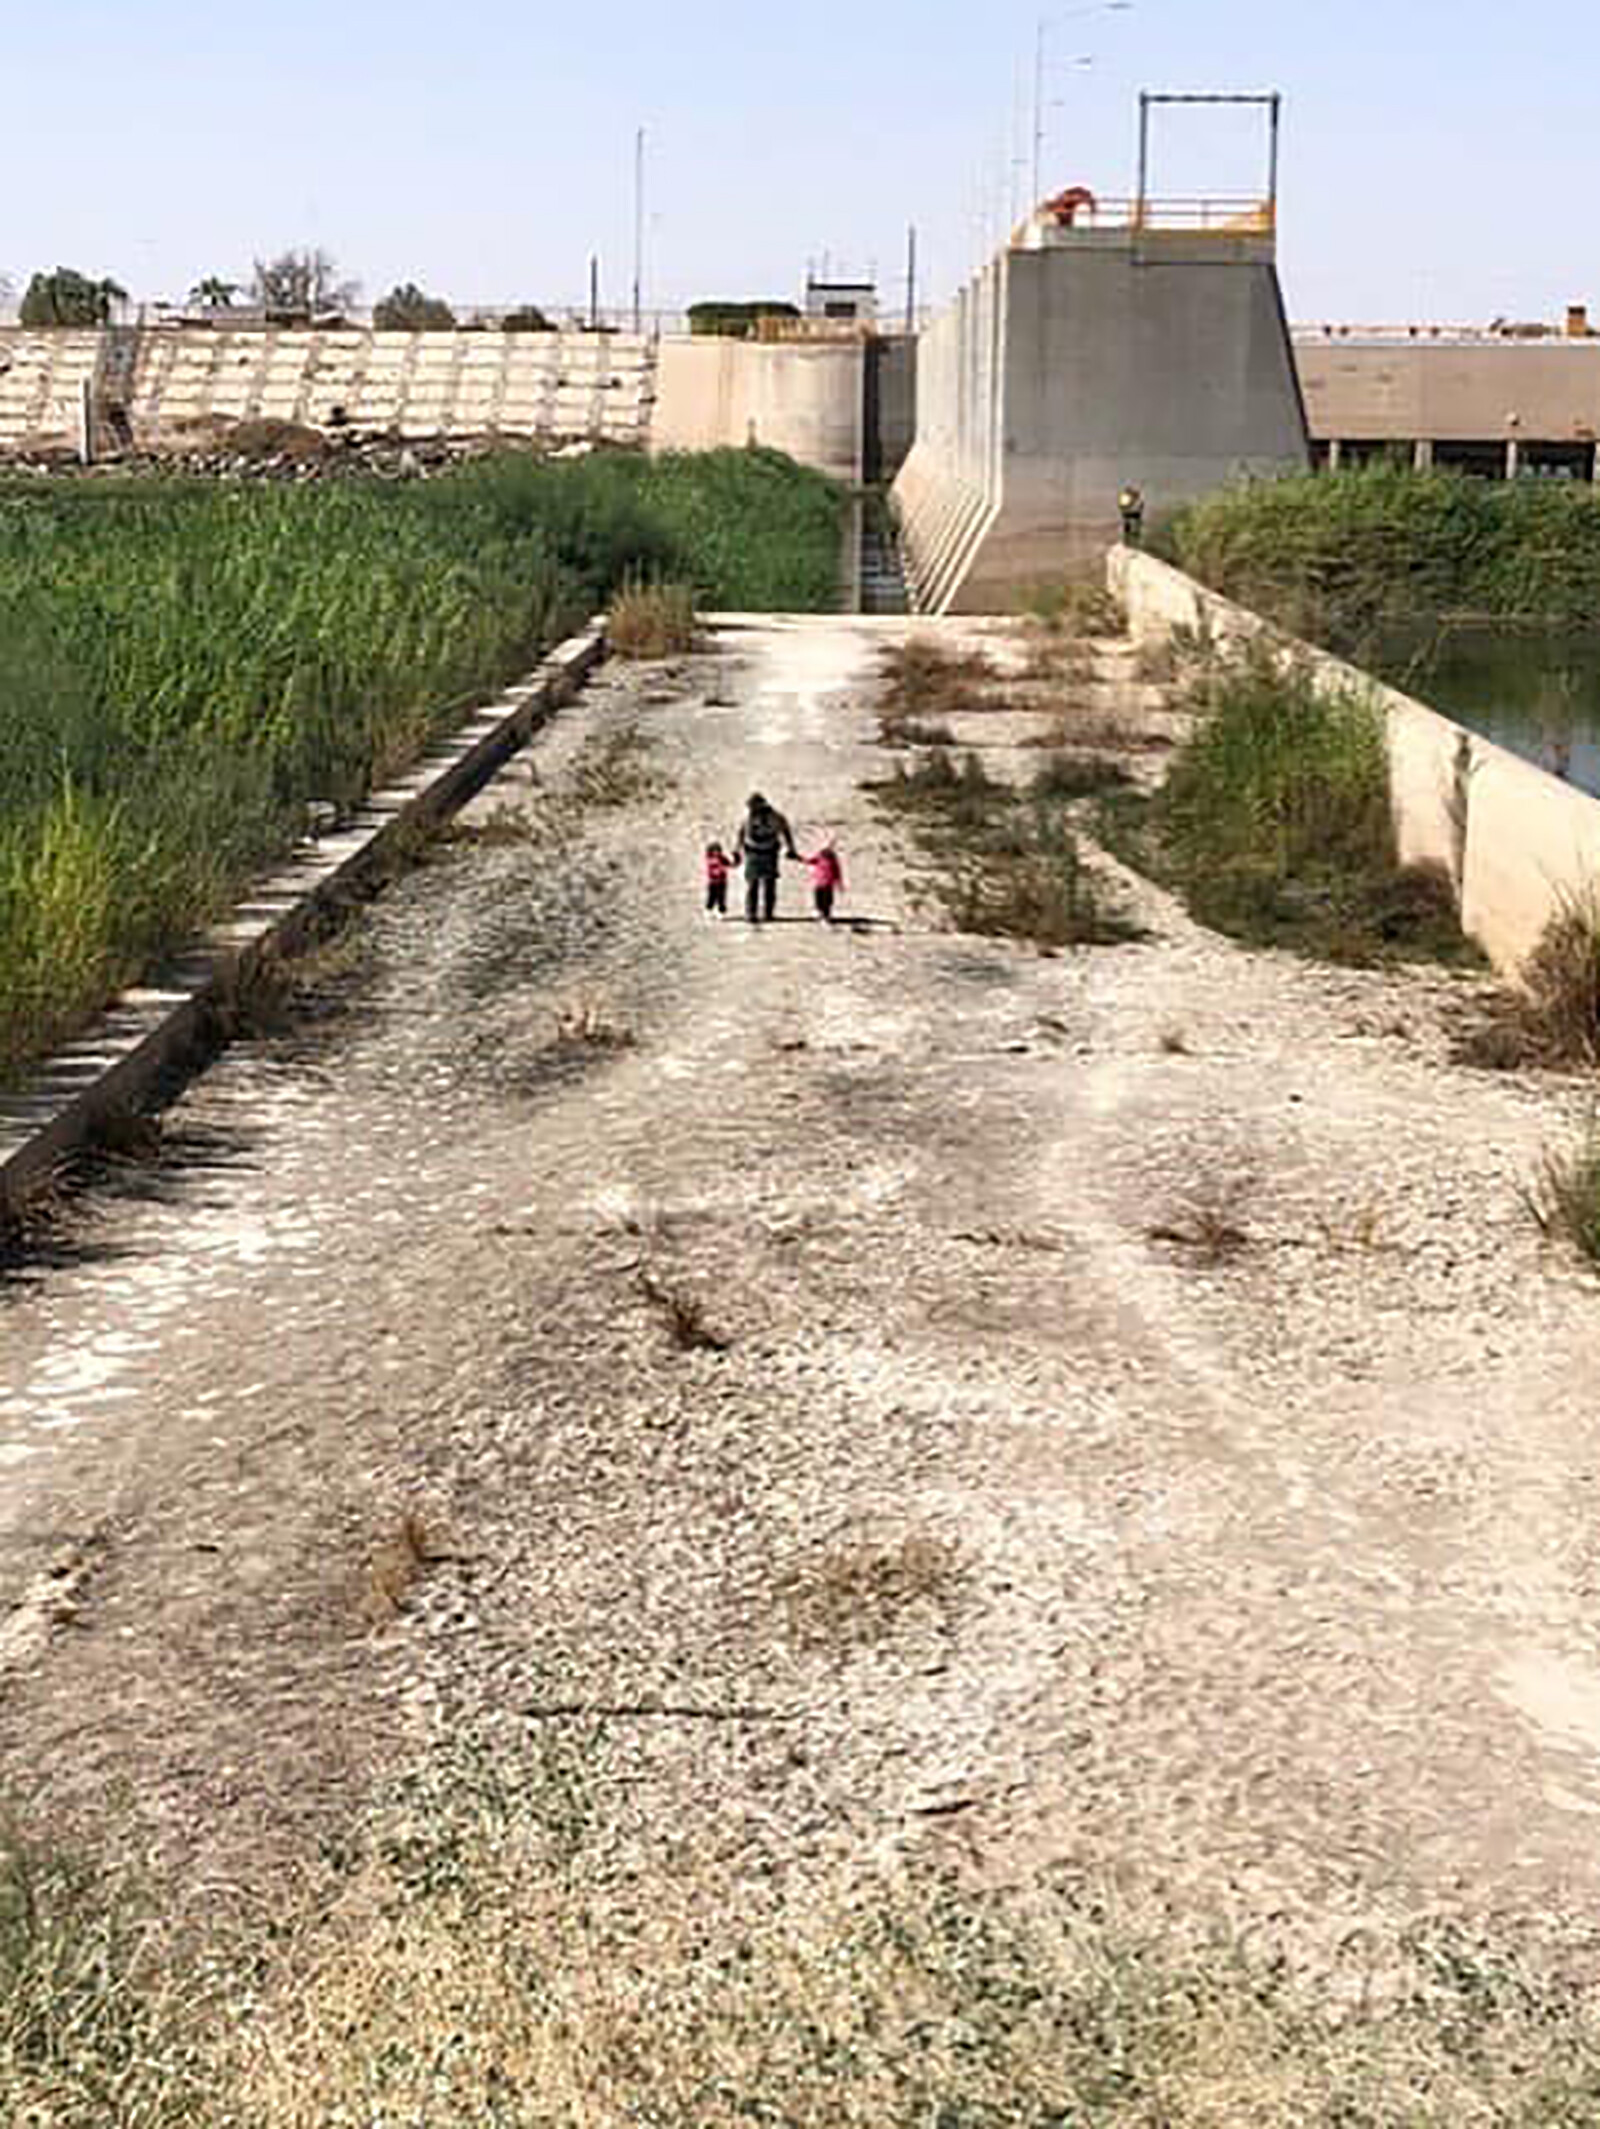 <i>US Border Patrol</i><br/>A US Border Patrol agent is seen walking with two young sisters found on October 12